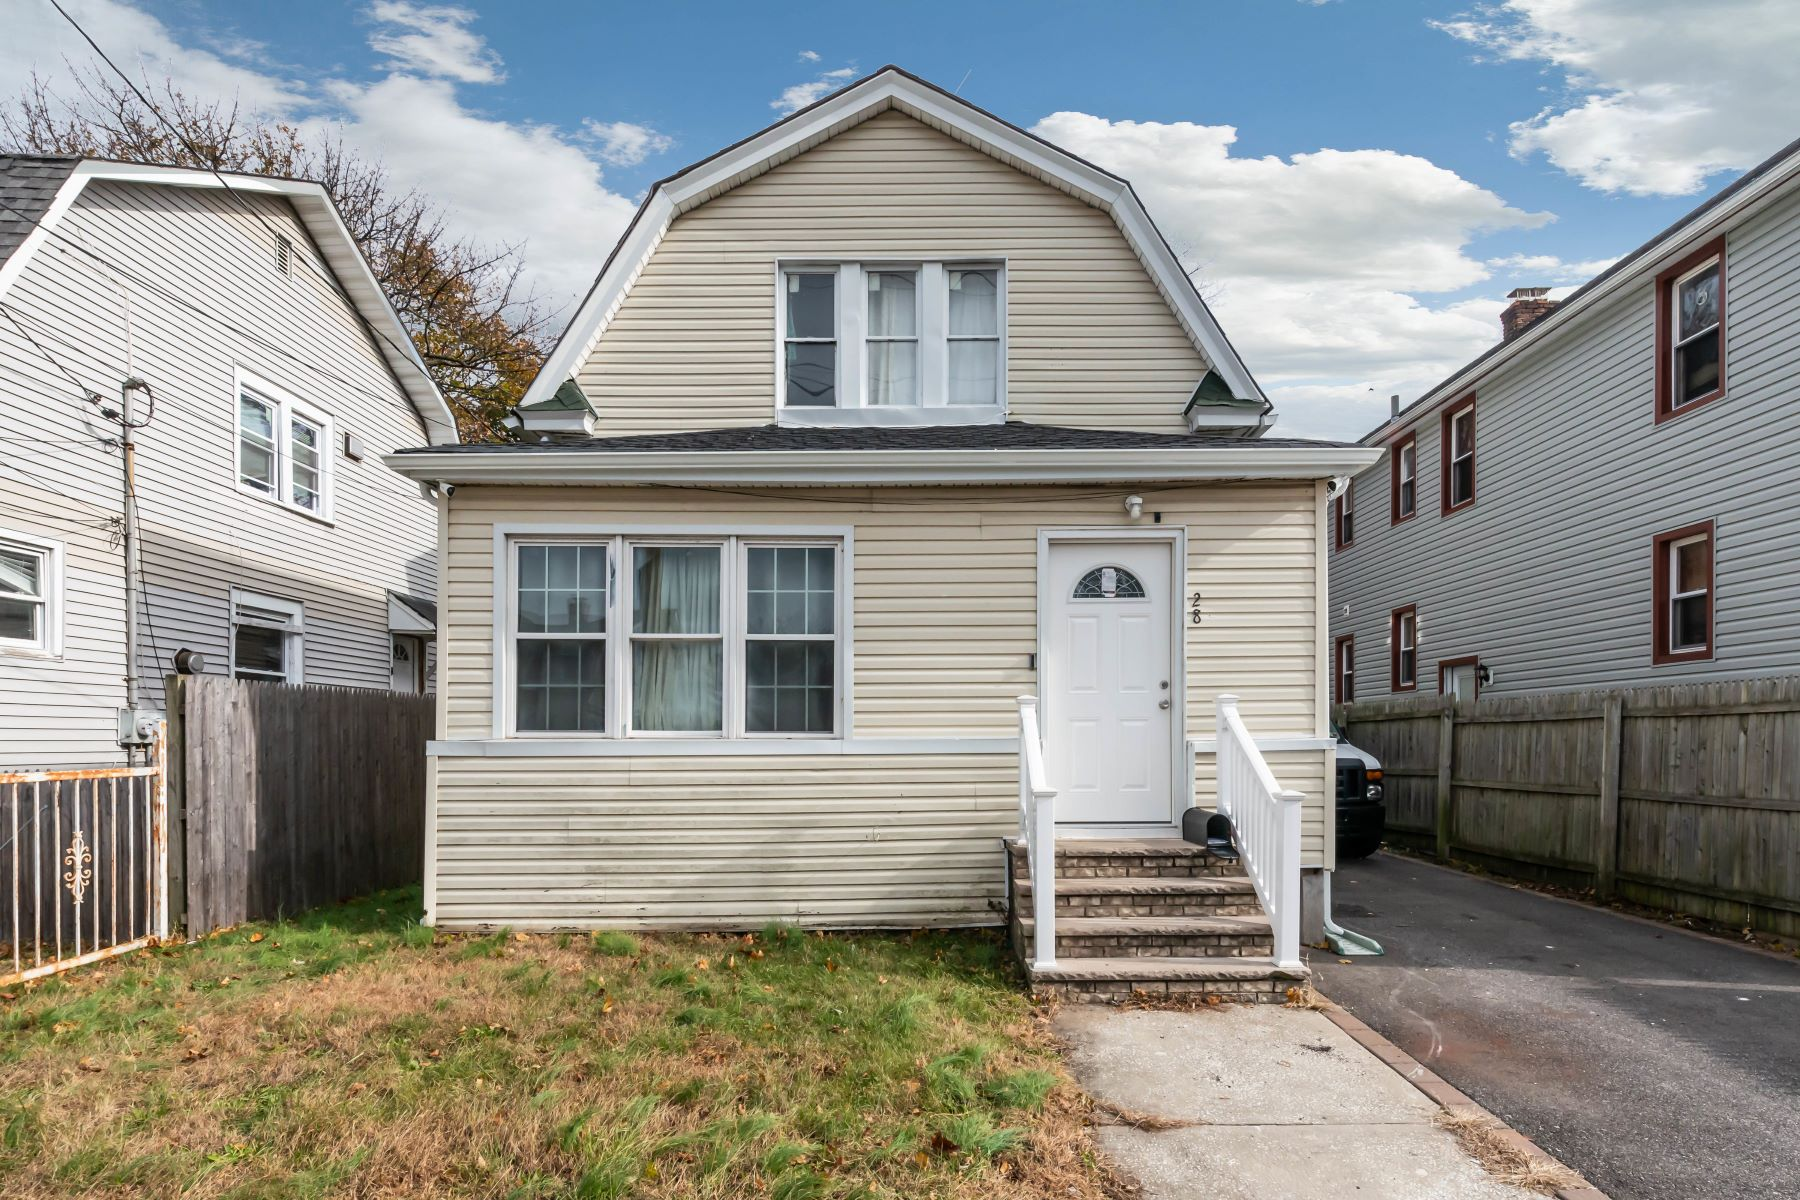 Single Family Homes for Sale at Hempstead 28 Stewart Ave Hempstead, New York 11550 United States